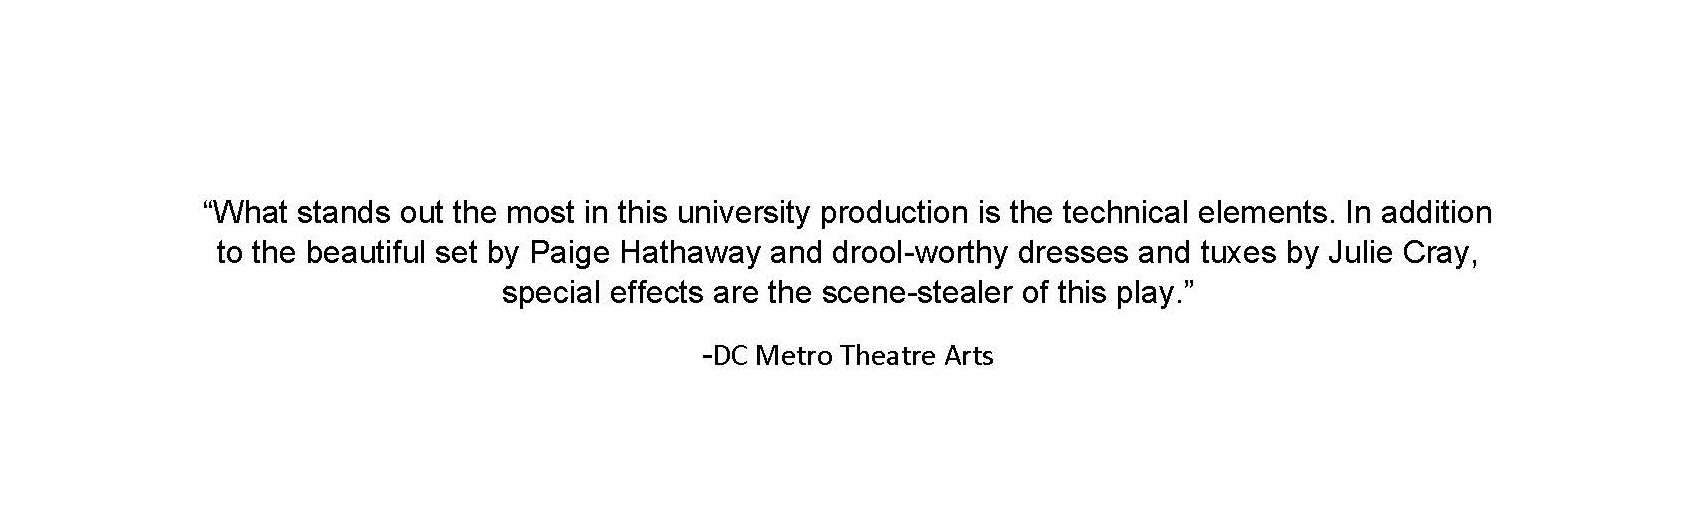 To read the full review, go to:   http://dcmetrotheaterarts.com/2015/11/20/big-love-at-the-catholic-university-of-america/